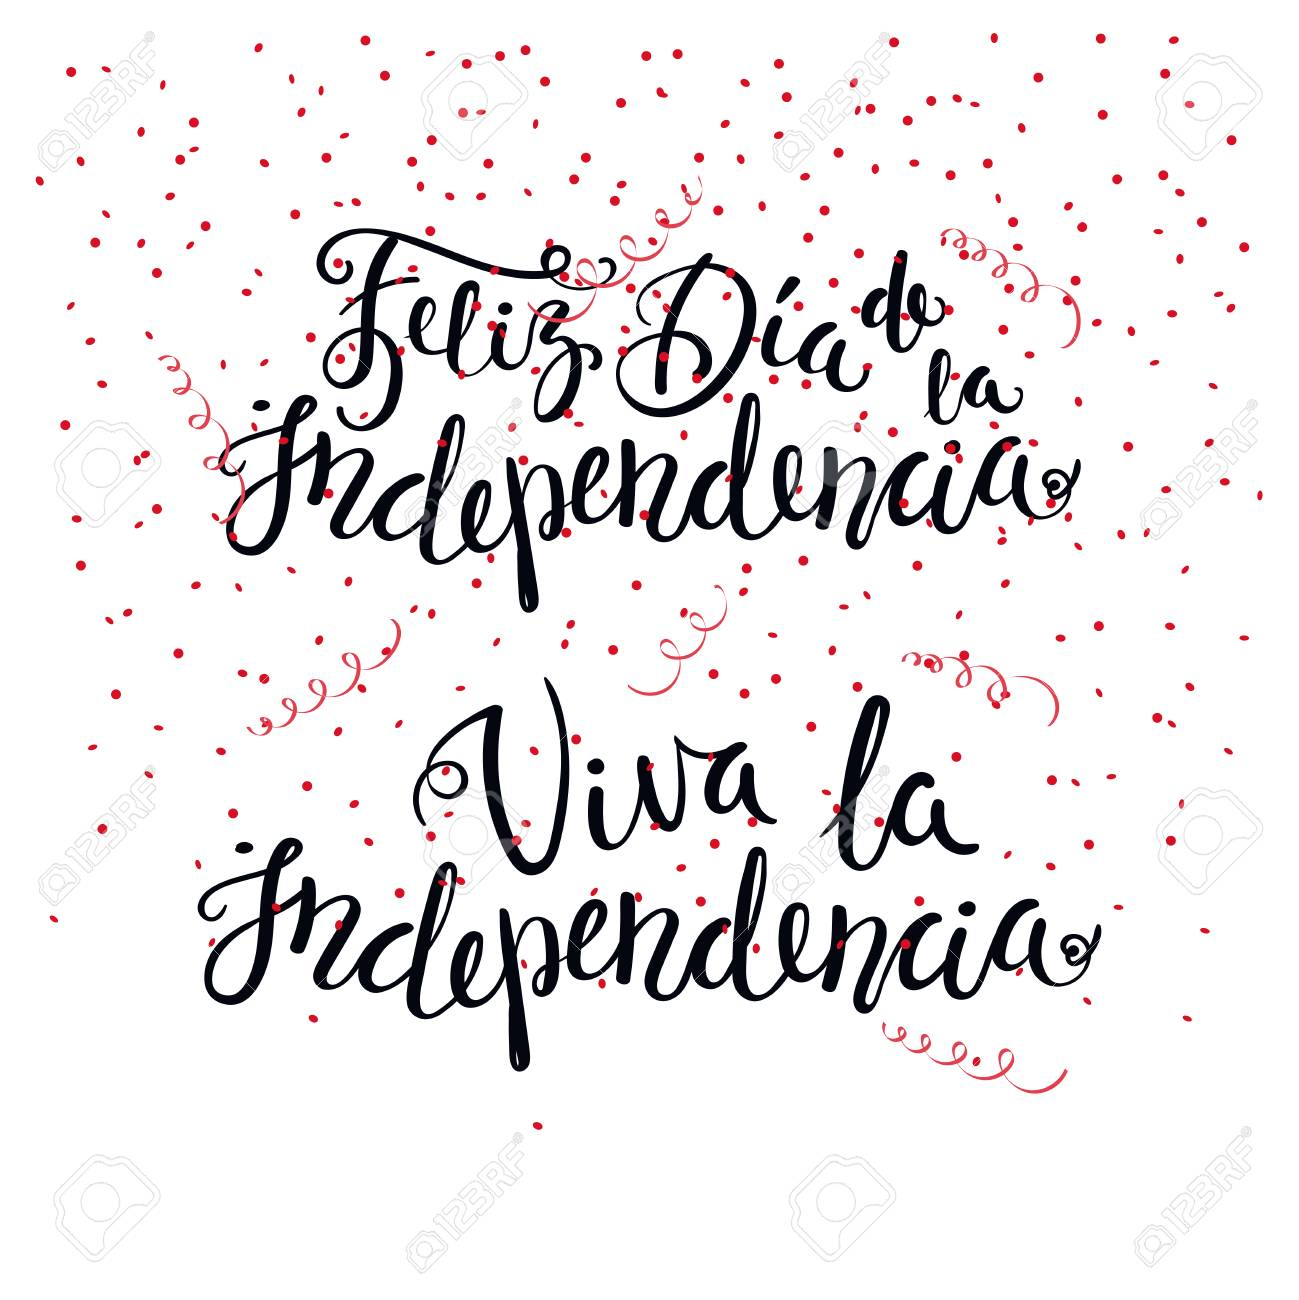 Hand Written Calligraphic Spanish Lettering Quotes For Independence